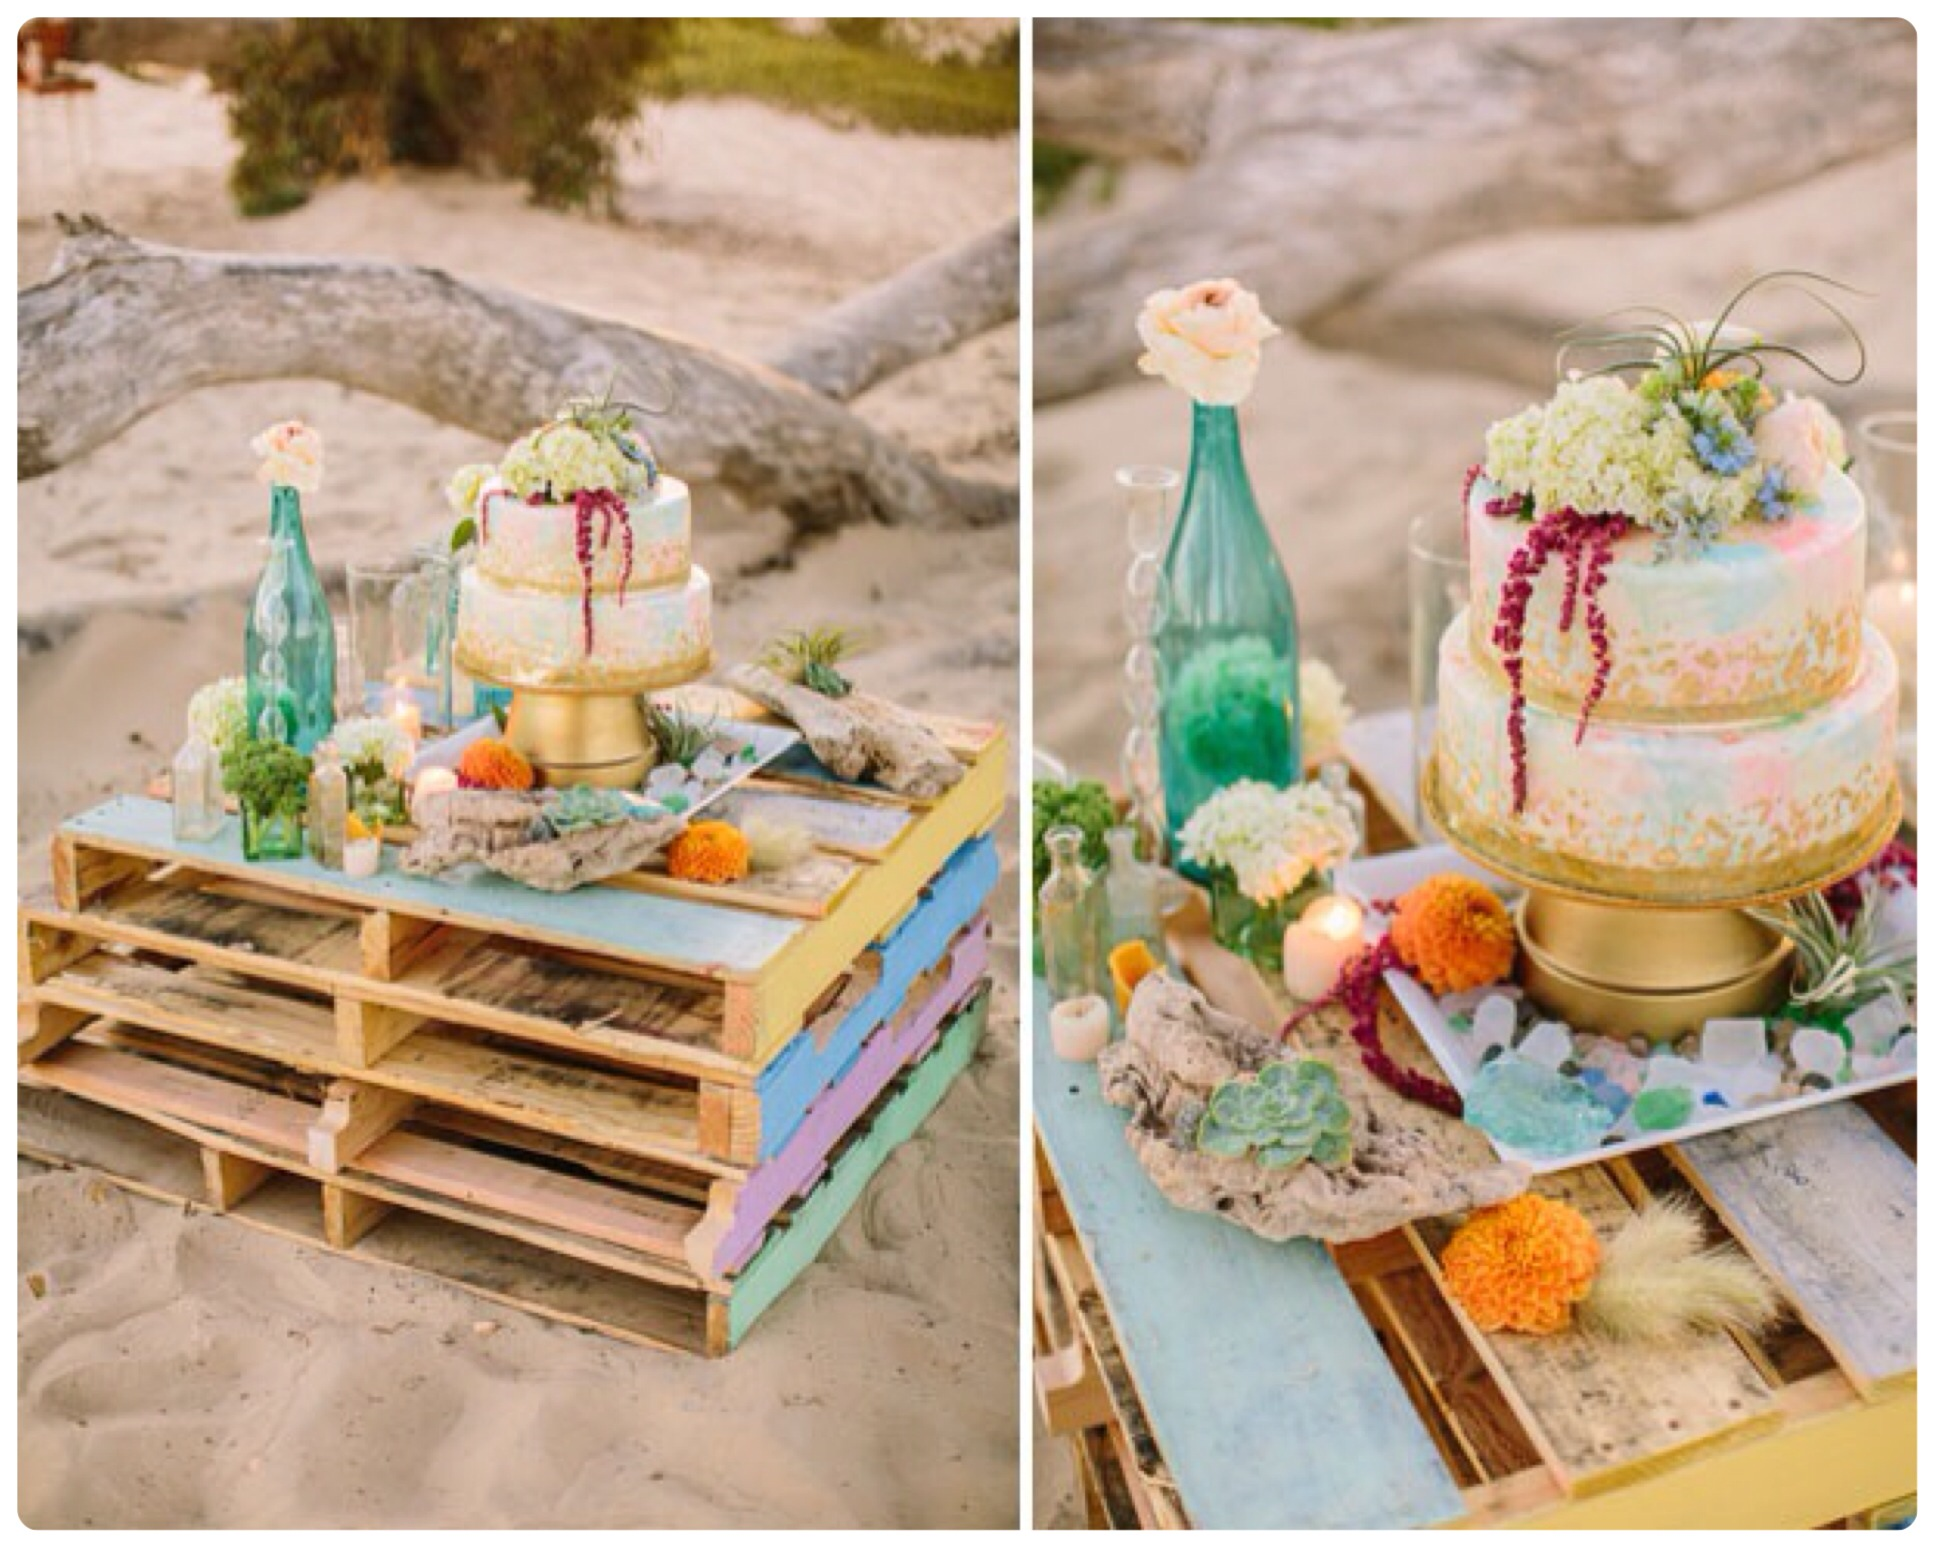 Boda hippie chic decoracion for Decoracion casa hippie